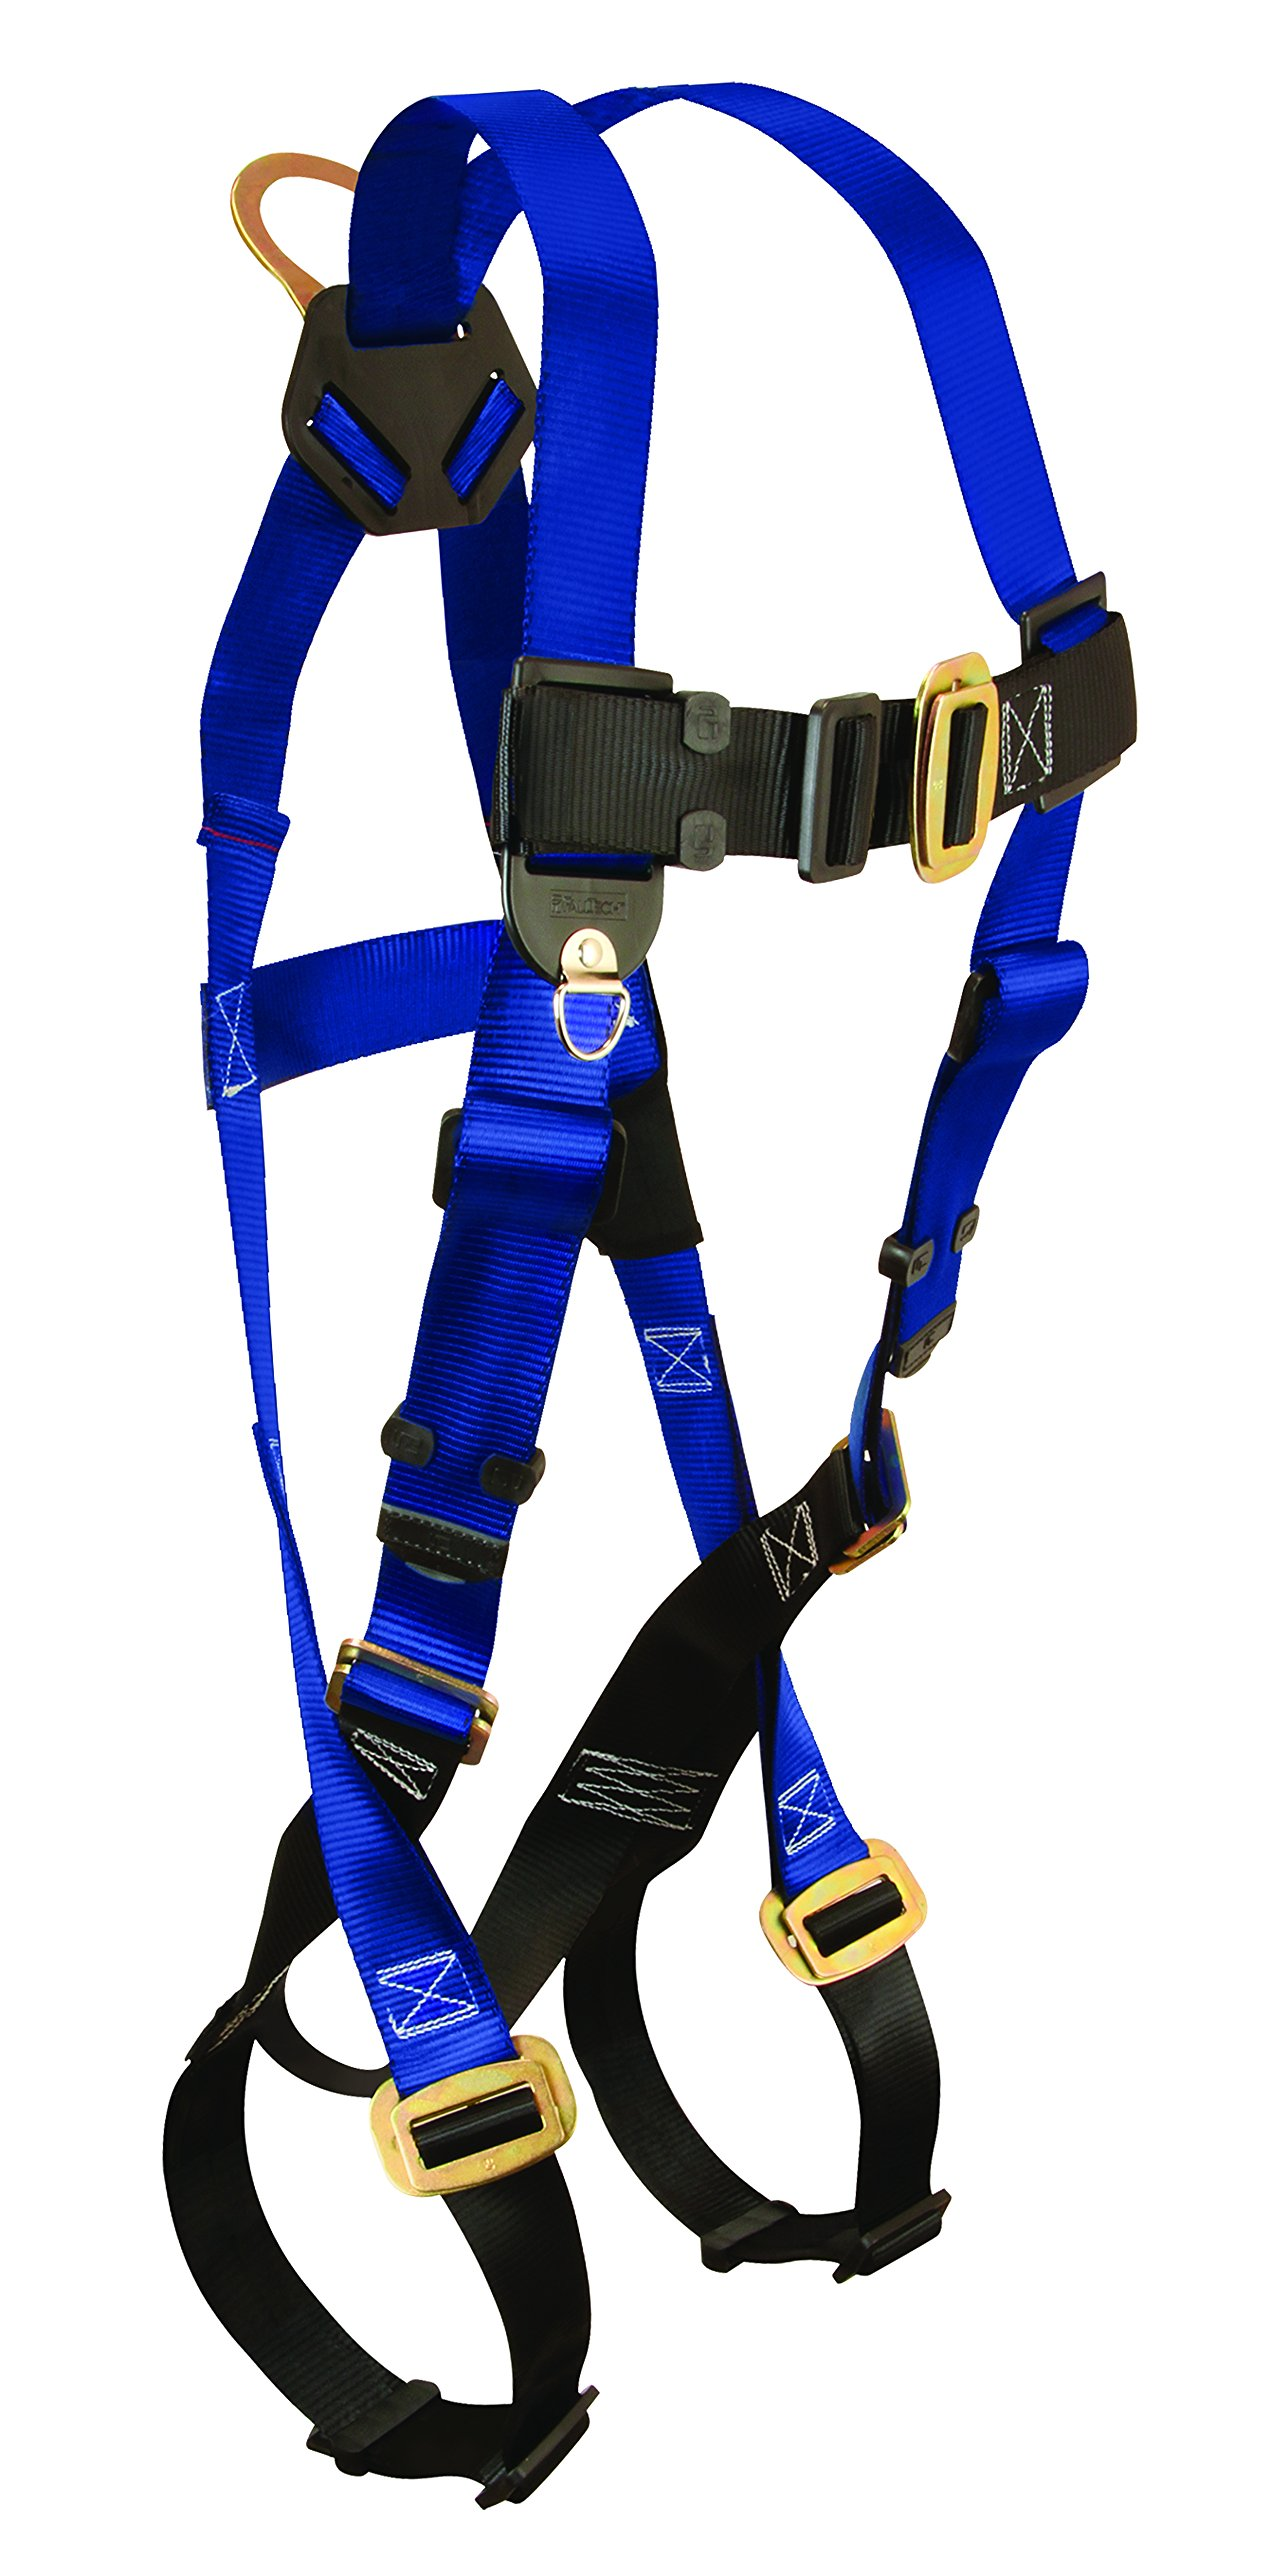 FallTech 7015 Contractor Full Body Harness with 1 D-Ring and Mating Buckle Leg Straps, Universal Fit by FallTech (Image #1)